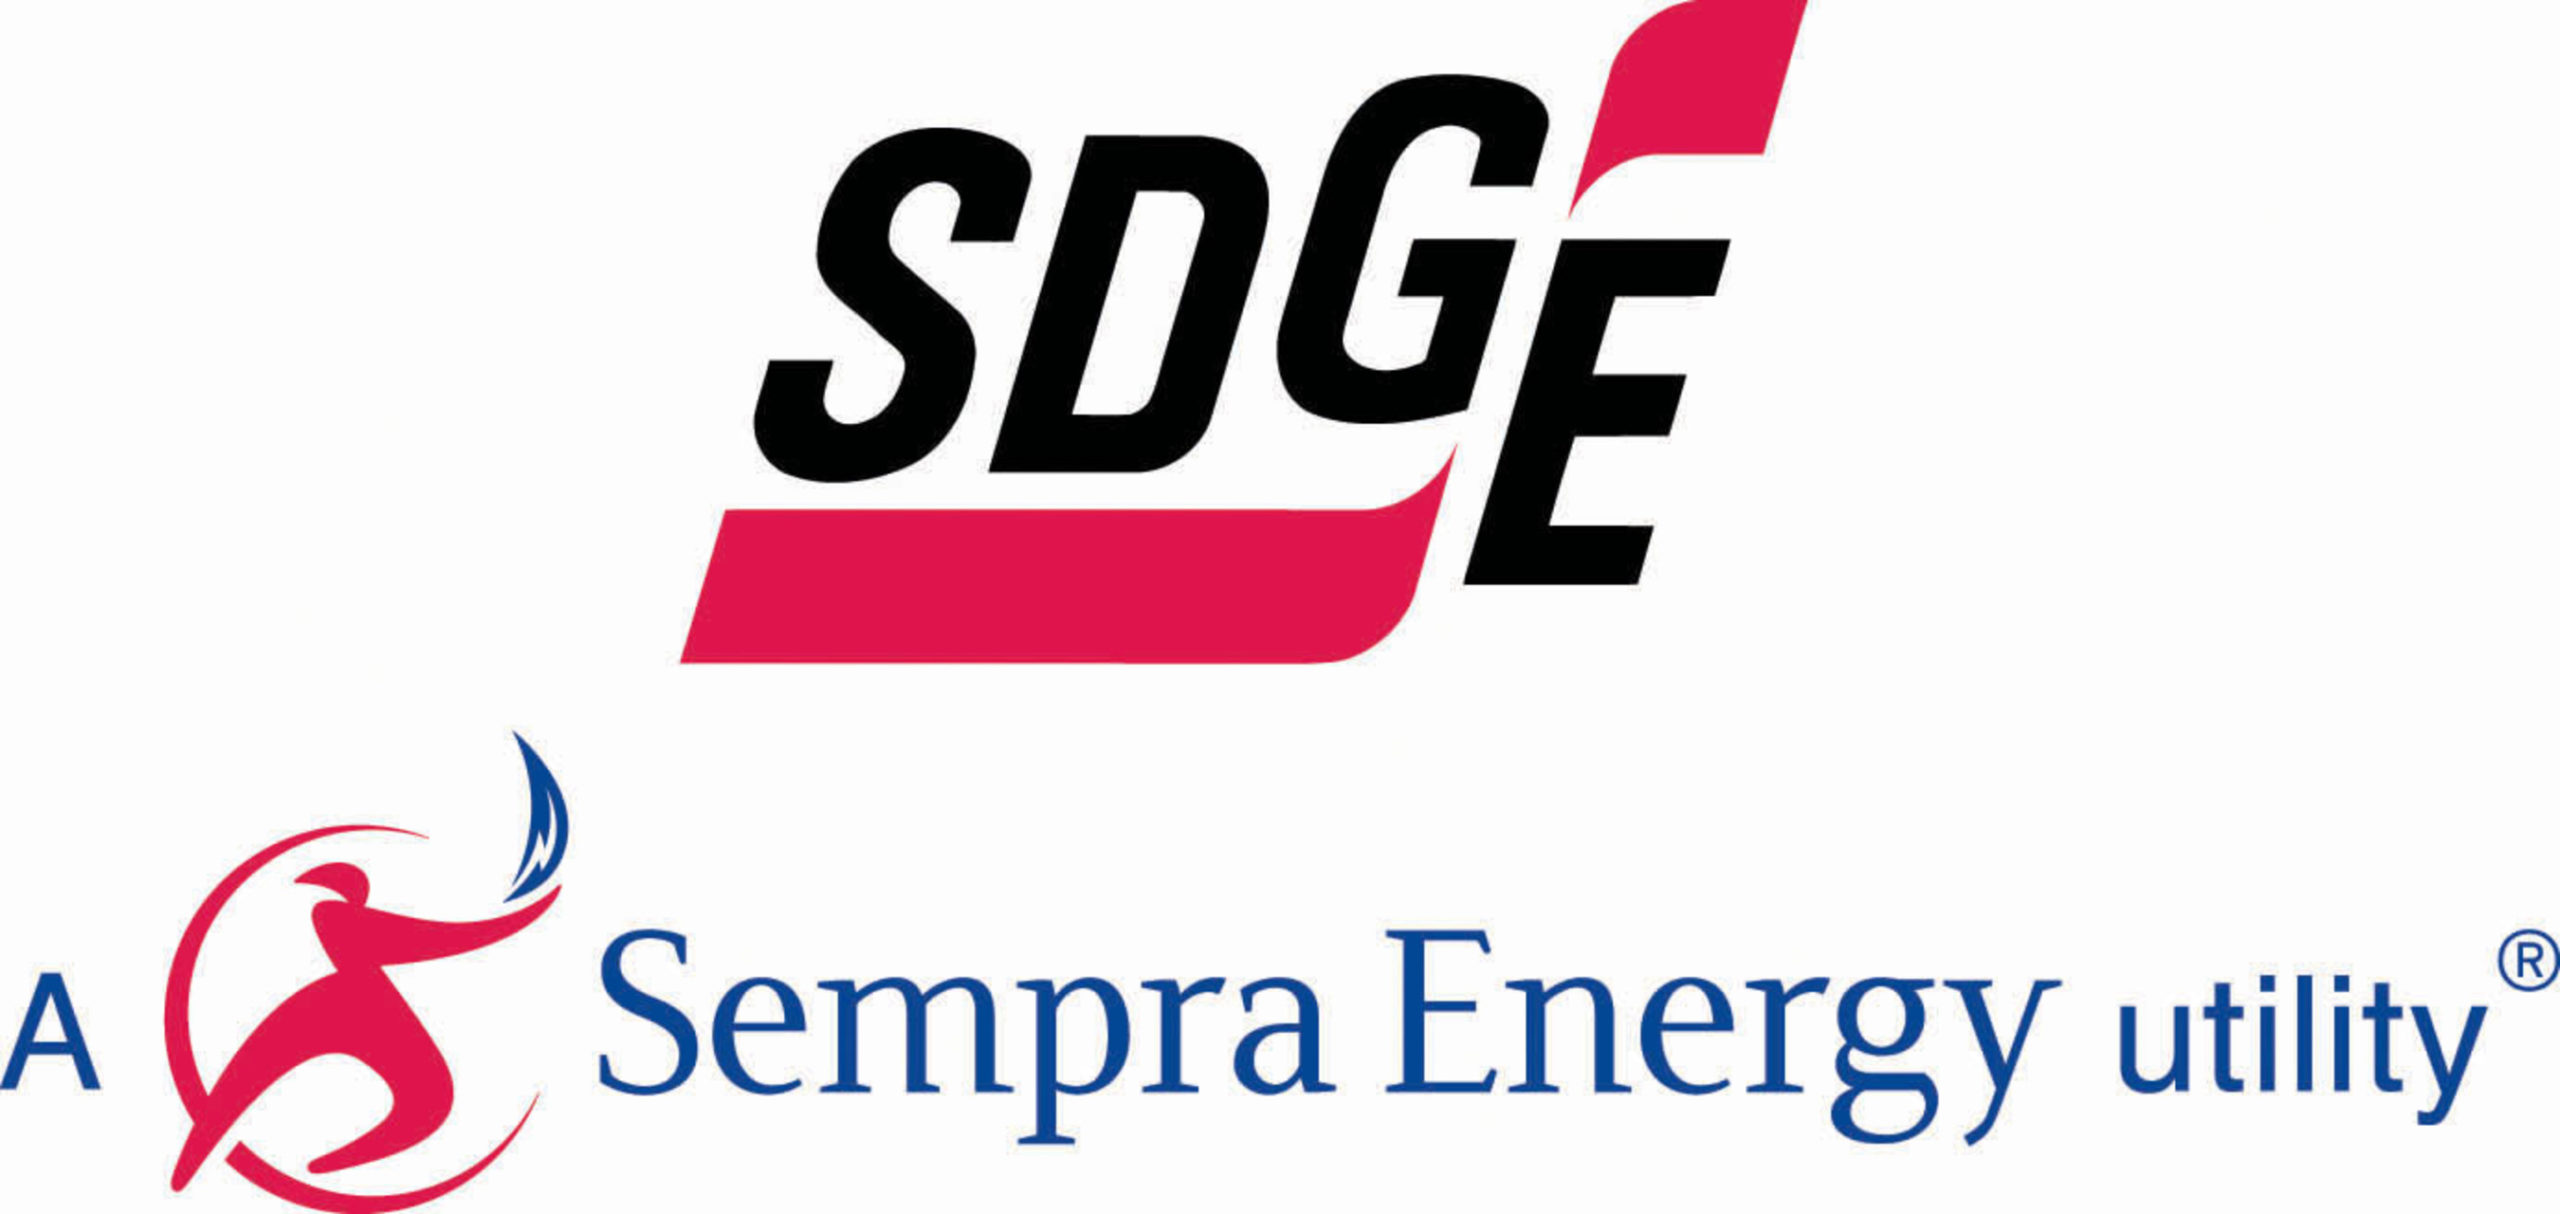 SDG&E is a regulated public utility that provides safe and reliable energy service to 3.4 million consumers through 1.4 million electric meters and 861,000 natural gas meters in San Diego and southern Orange counties. The utility?s area spans 4,100 square miles. SDG&E is committed to creating ways to help customers save energy and money every day. SDG&E is a subsidiary of Sempra Energy (NYSE: SRE), a Fortune 500 energy services holding company based in San Diego. Connect with SDG&E?s Customer Contact Center at 800-411-7343, on Twitter (@SDGE) and Facebook. (PRNewsFoto/SDG&E)